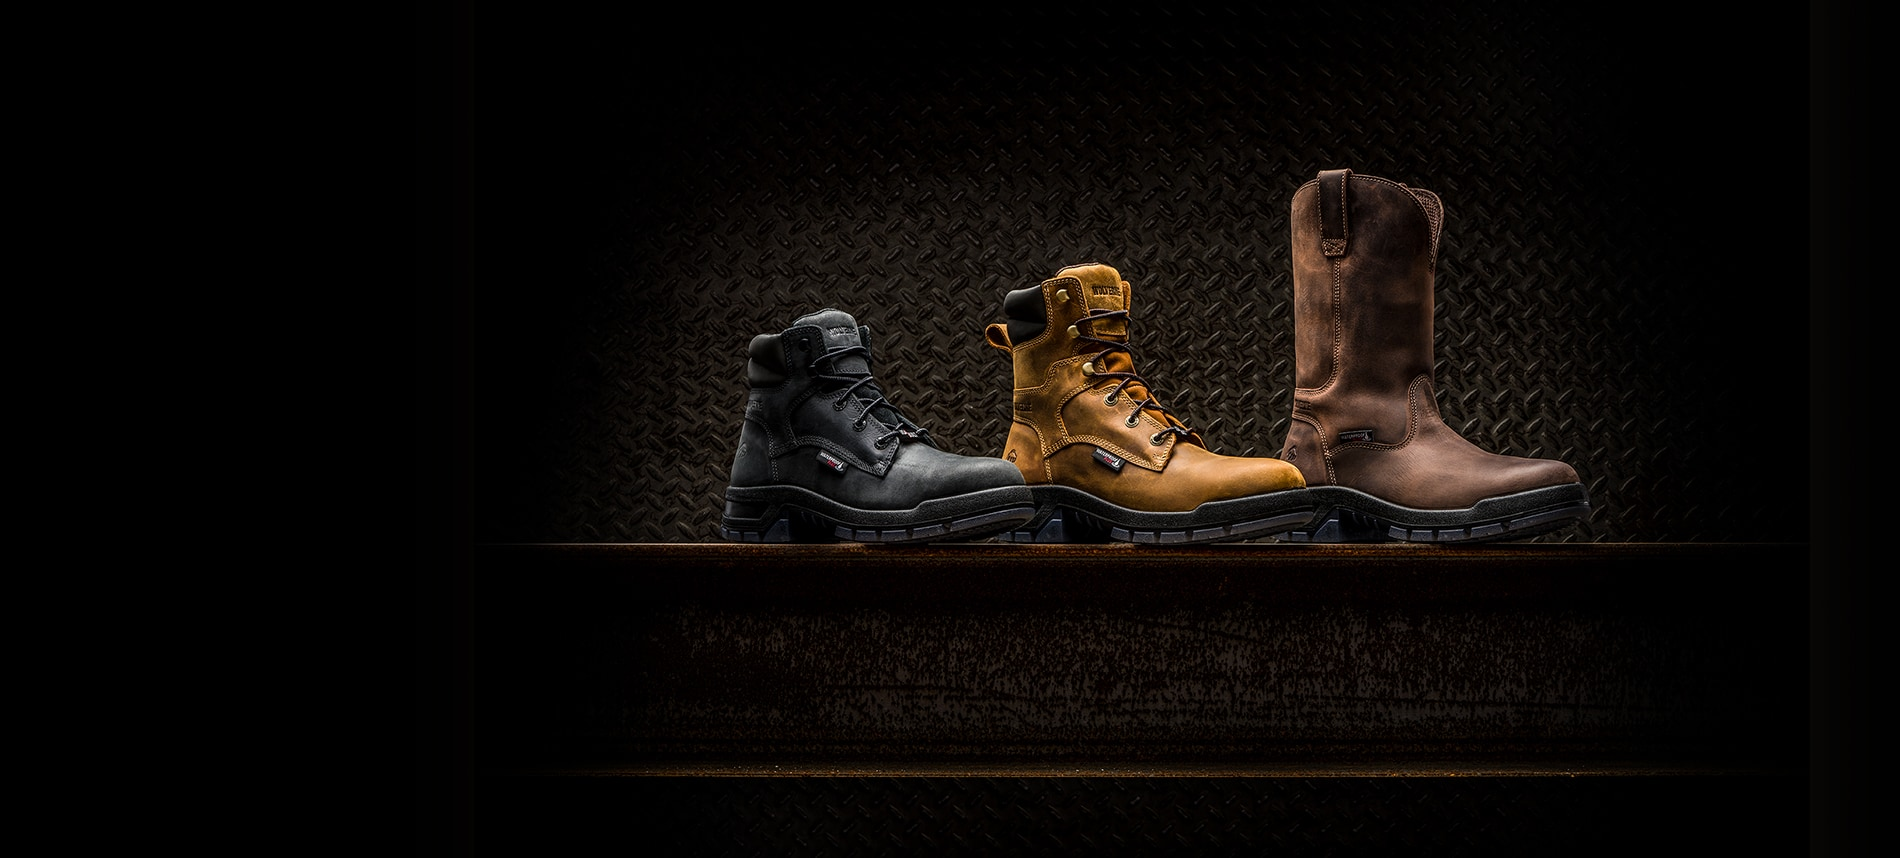 USA built Ramparts 3 boots on a black background